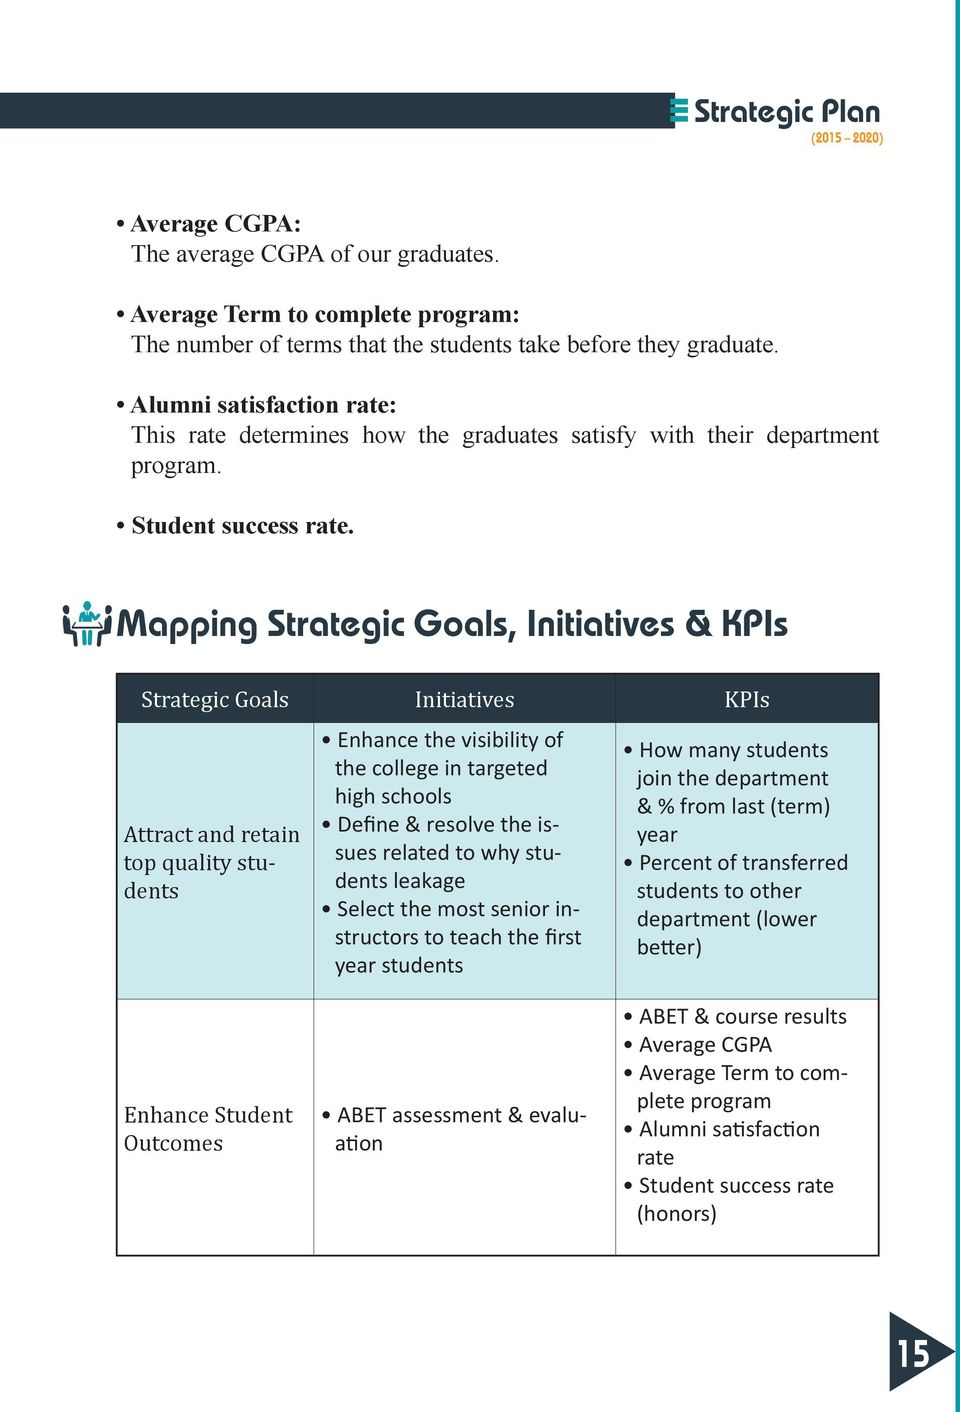 Mapping Strategic Goals, Initiatives & KPIs Strategic Goals Initiatives KPIs Attract and retain top quality students Enhance the visibility of the college in targeted high schools Define & resolve